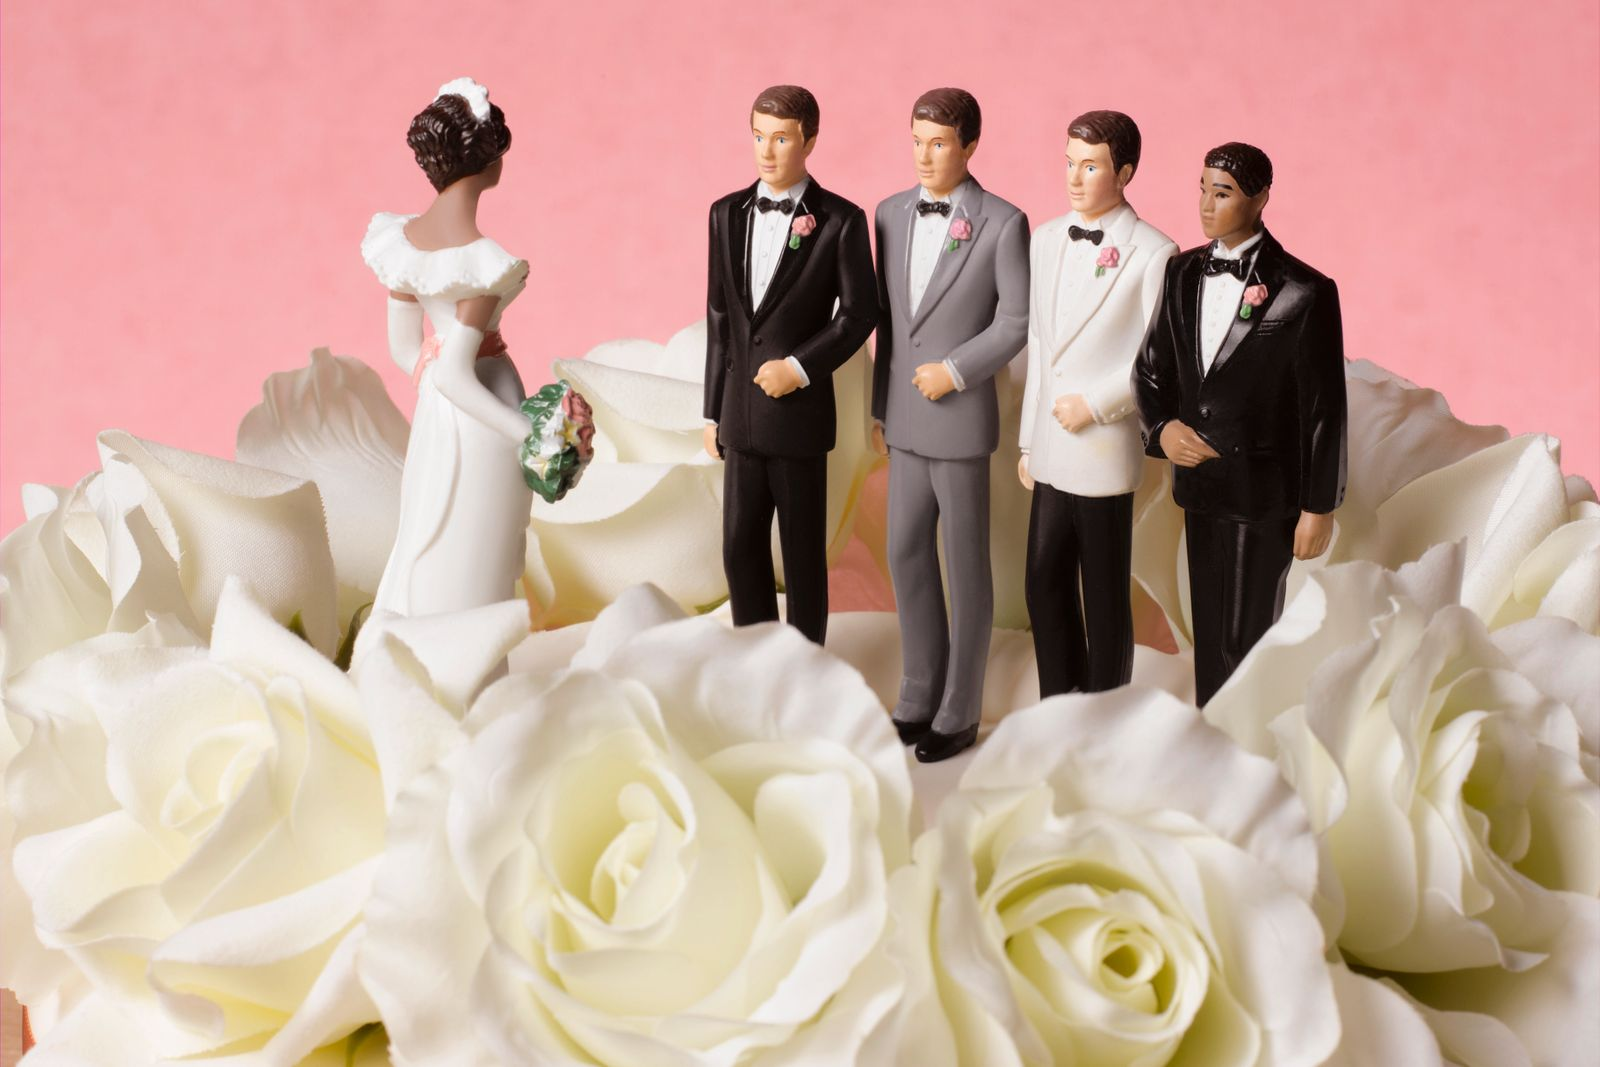 Bride figure on wedding cake with a choice of four grooms